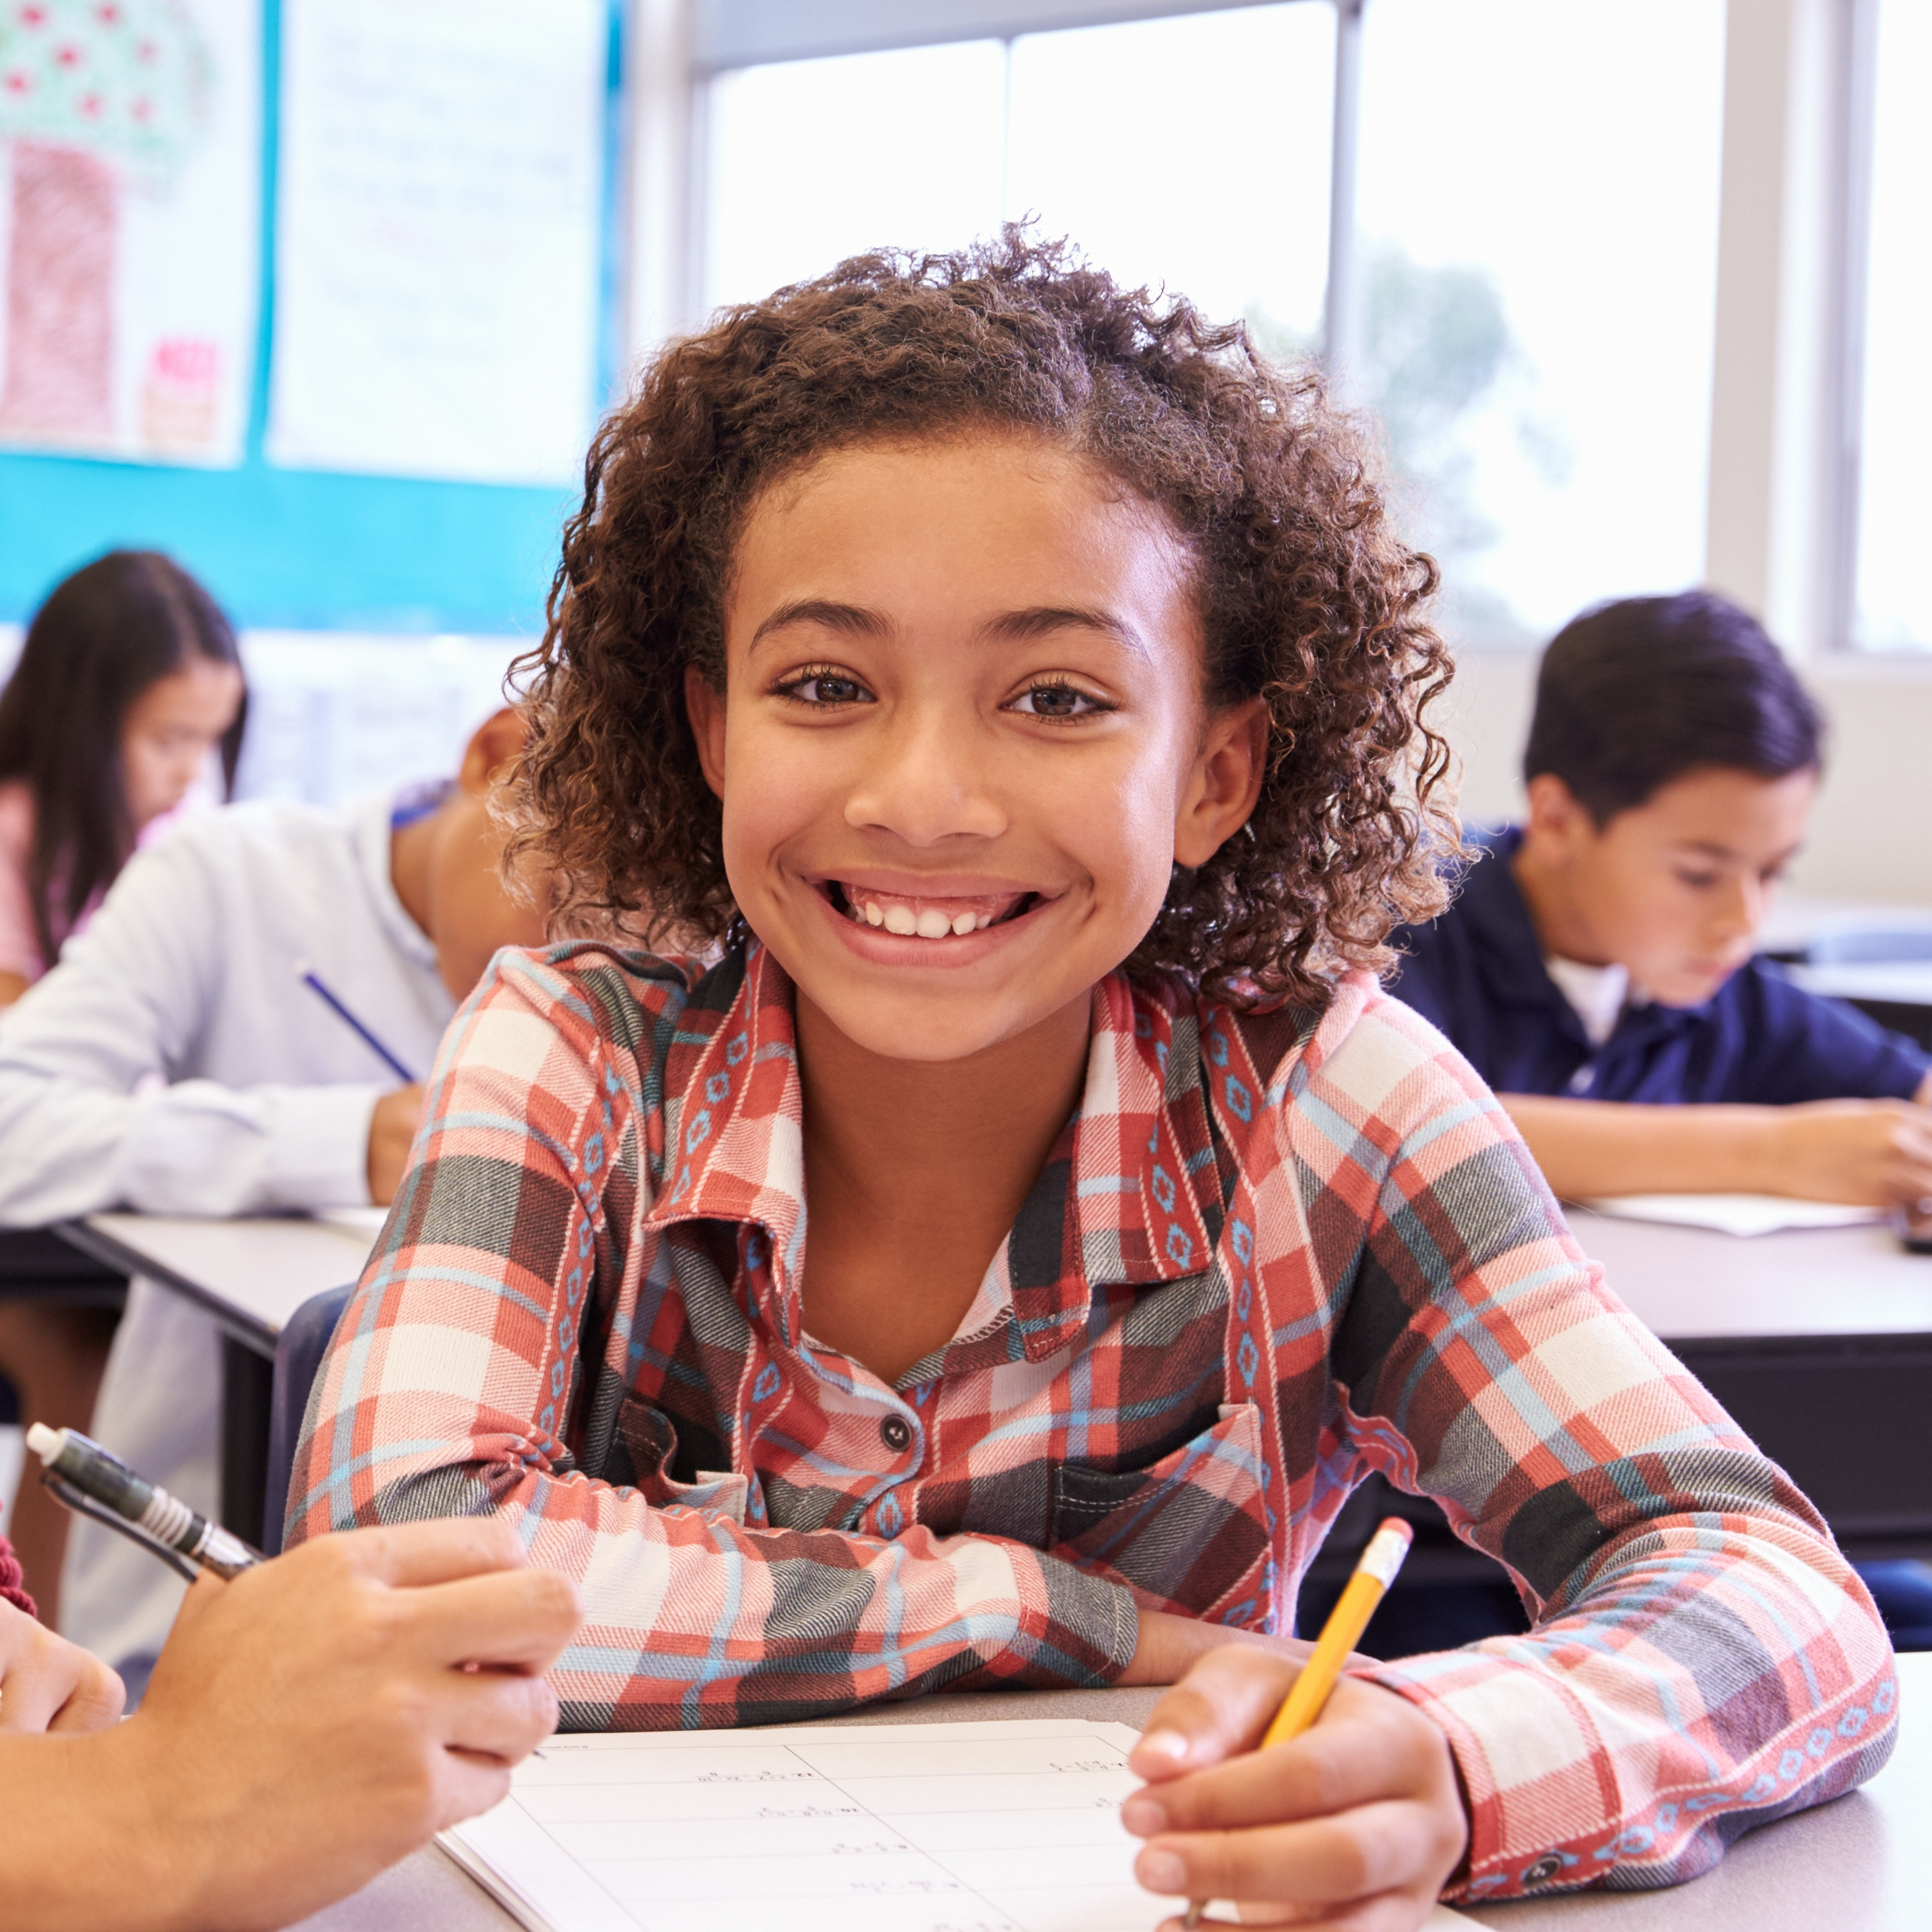 Smiling girl in a classroom setting holding a pencil and working on classwork